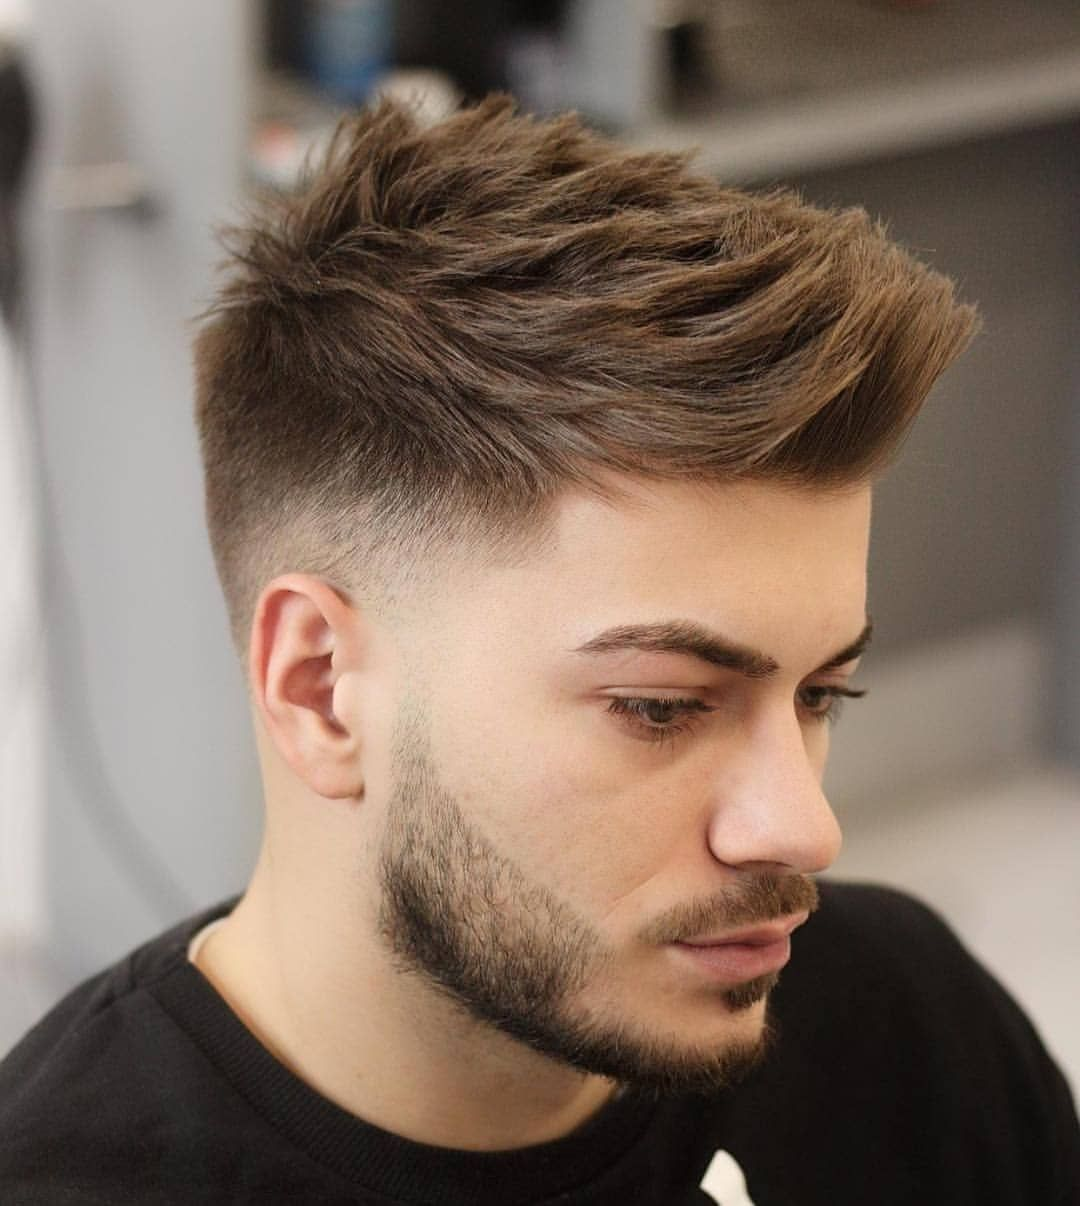 10 Most Preferred Short Haircut Style For Men 2019men Shaircuts Haircut Haircutstyles Manhair Boys Haircut Styles Thick Hair Styles Mens Hairstyles Short